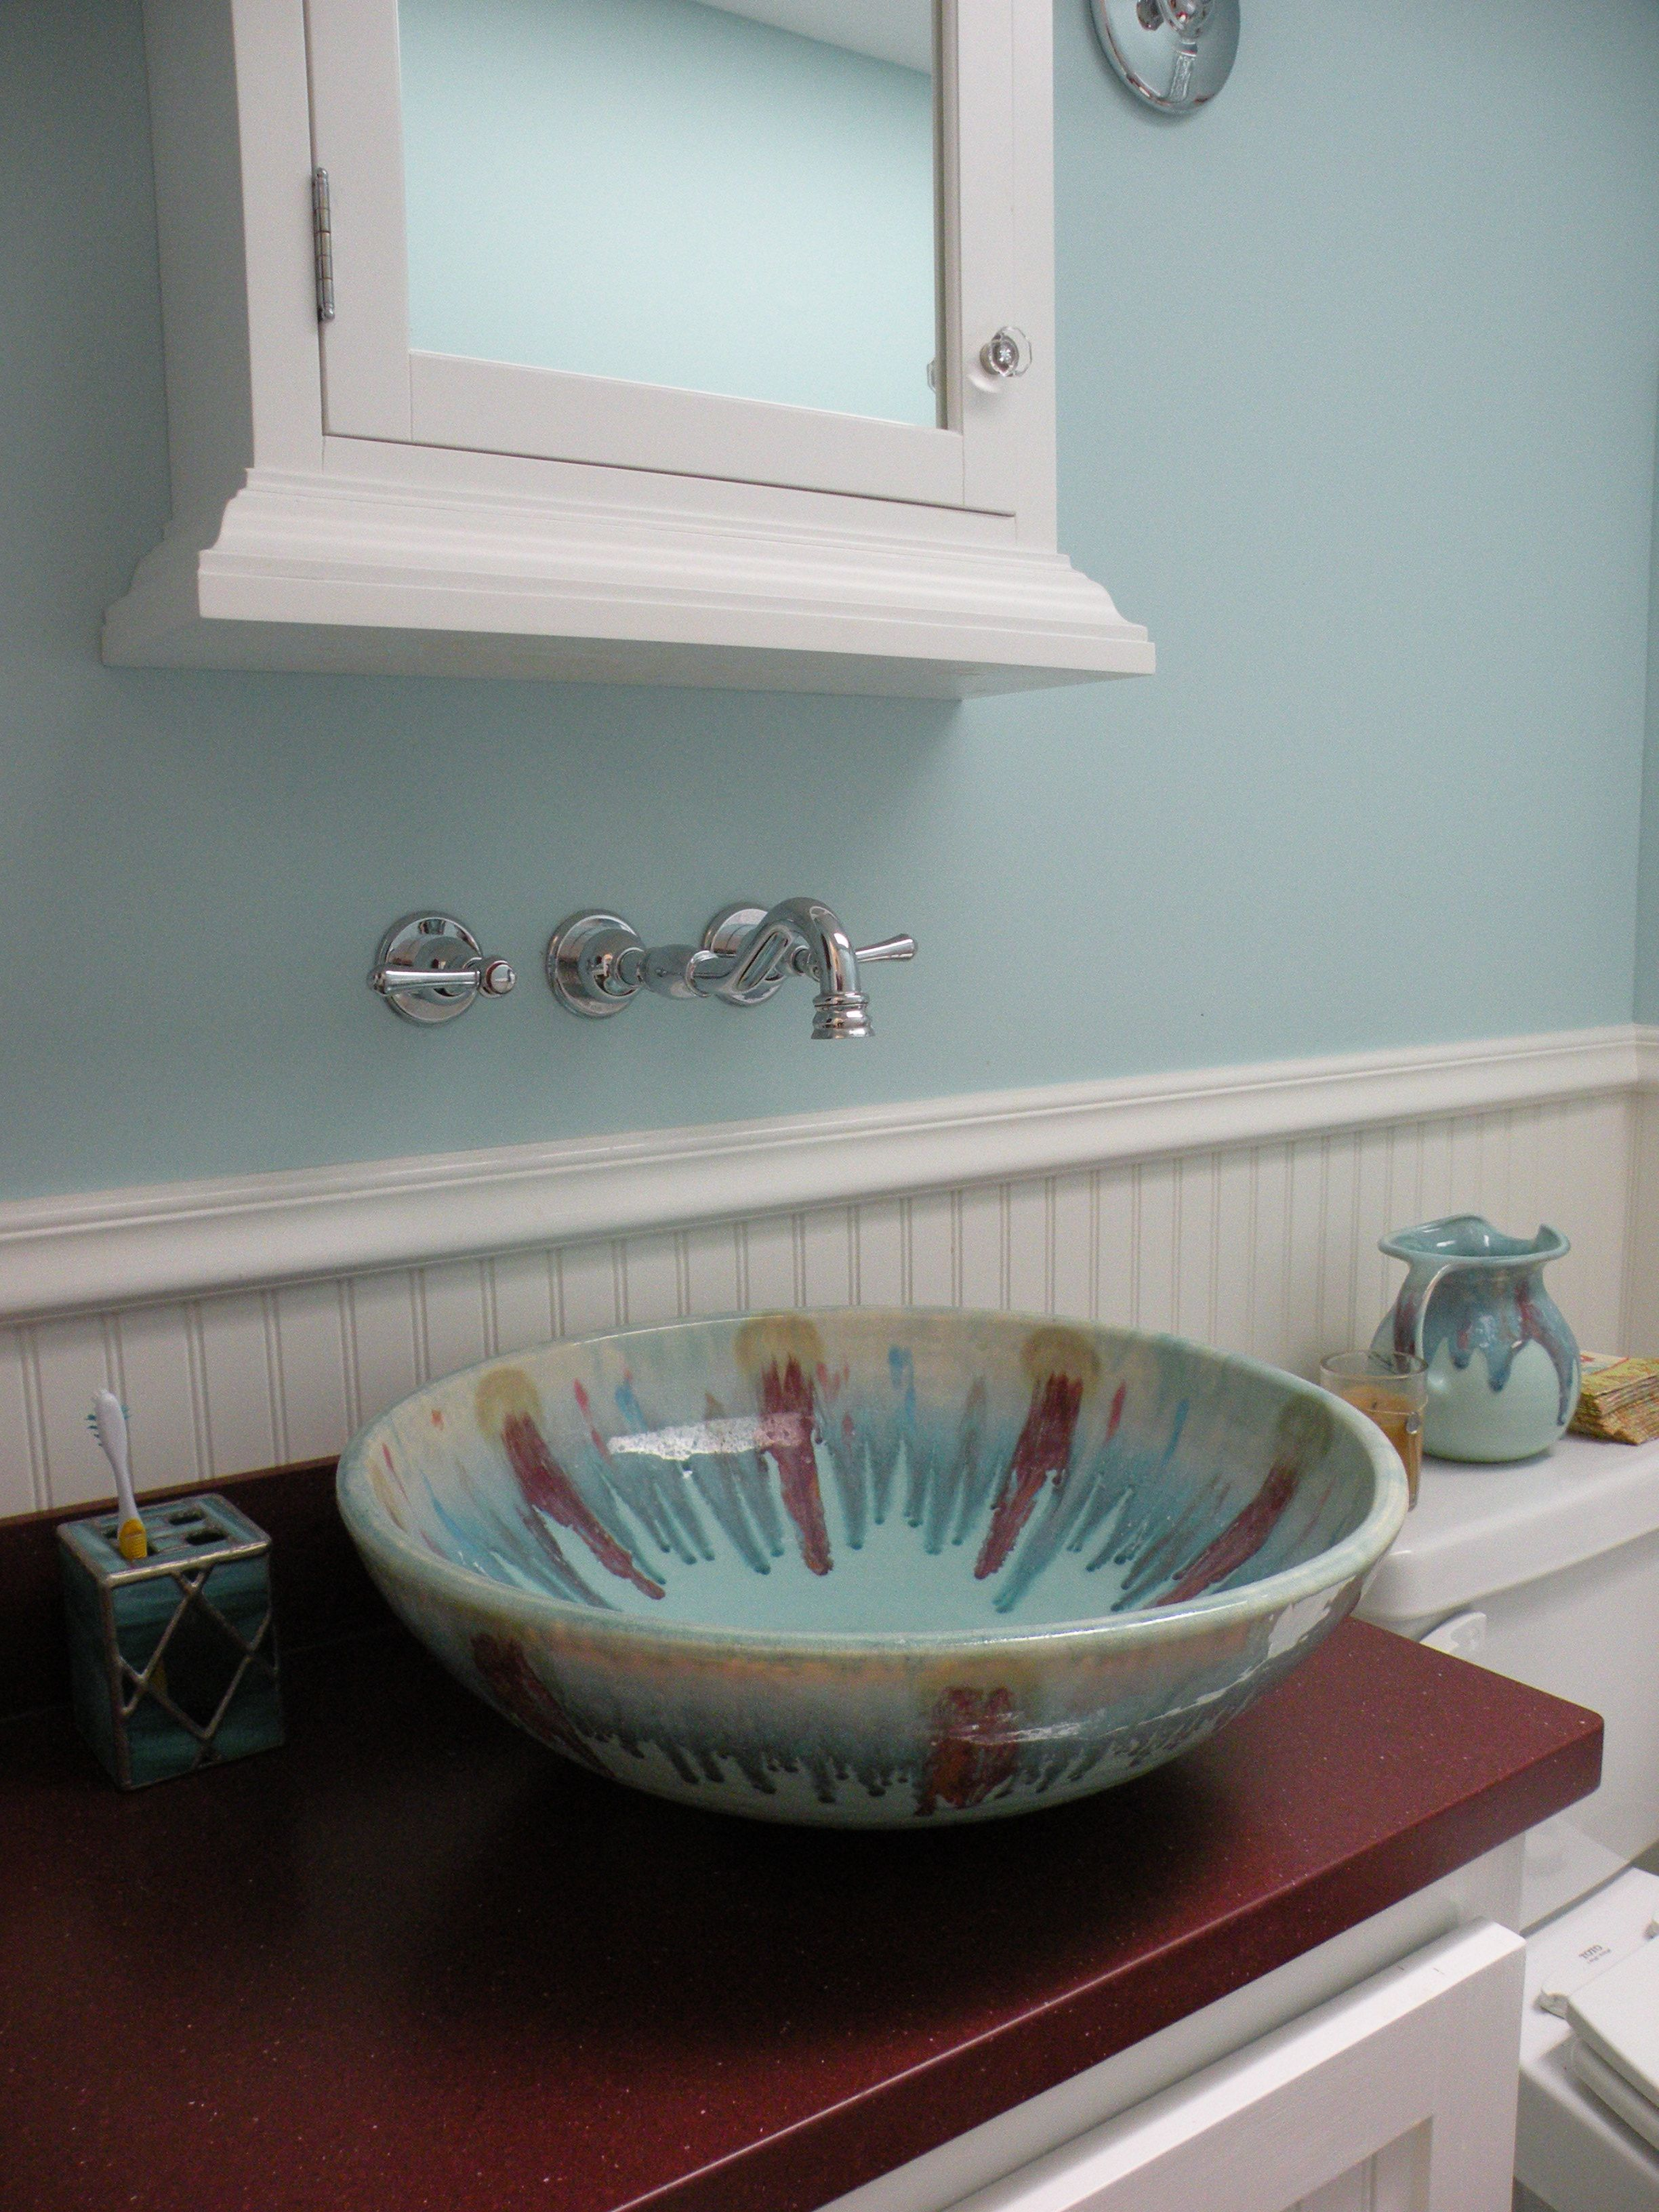 Handmade ceramic bowl was used for a sink. Note the pitcher in the ...